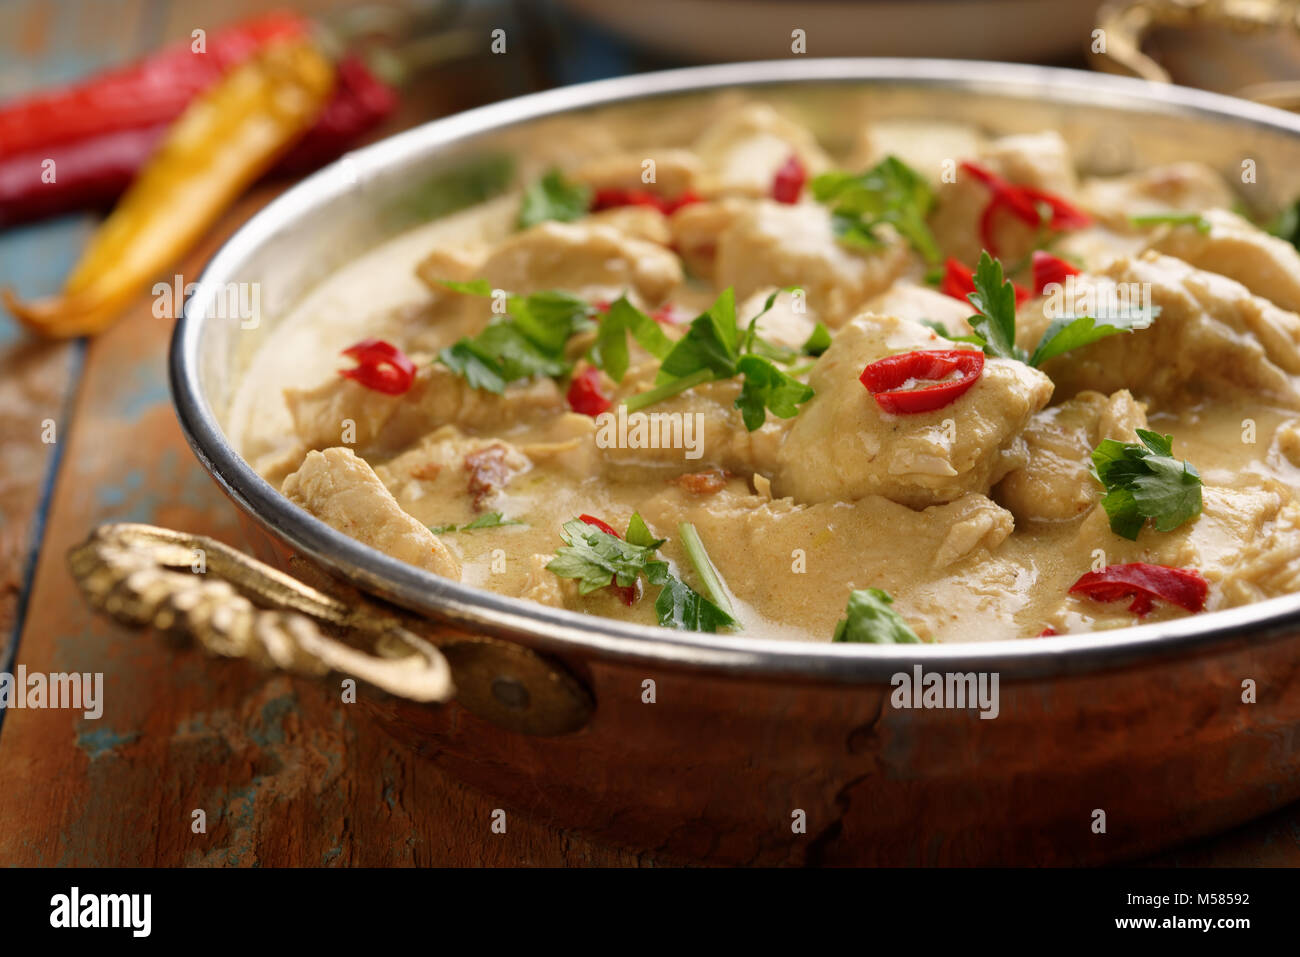 Chicken curry in a rustic cooking pan - Stock Image